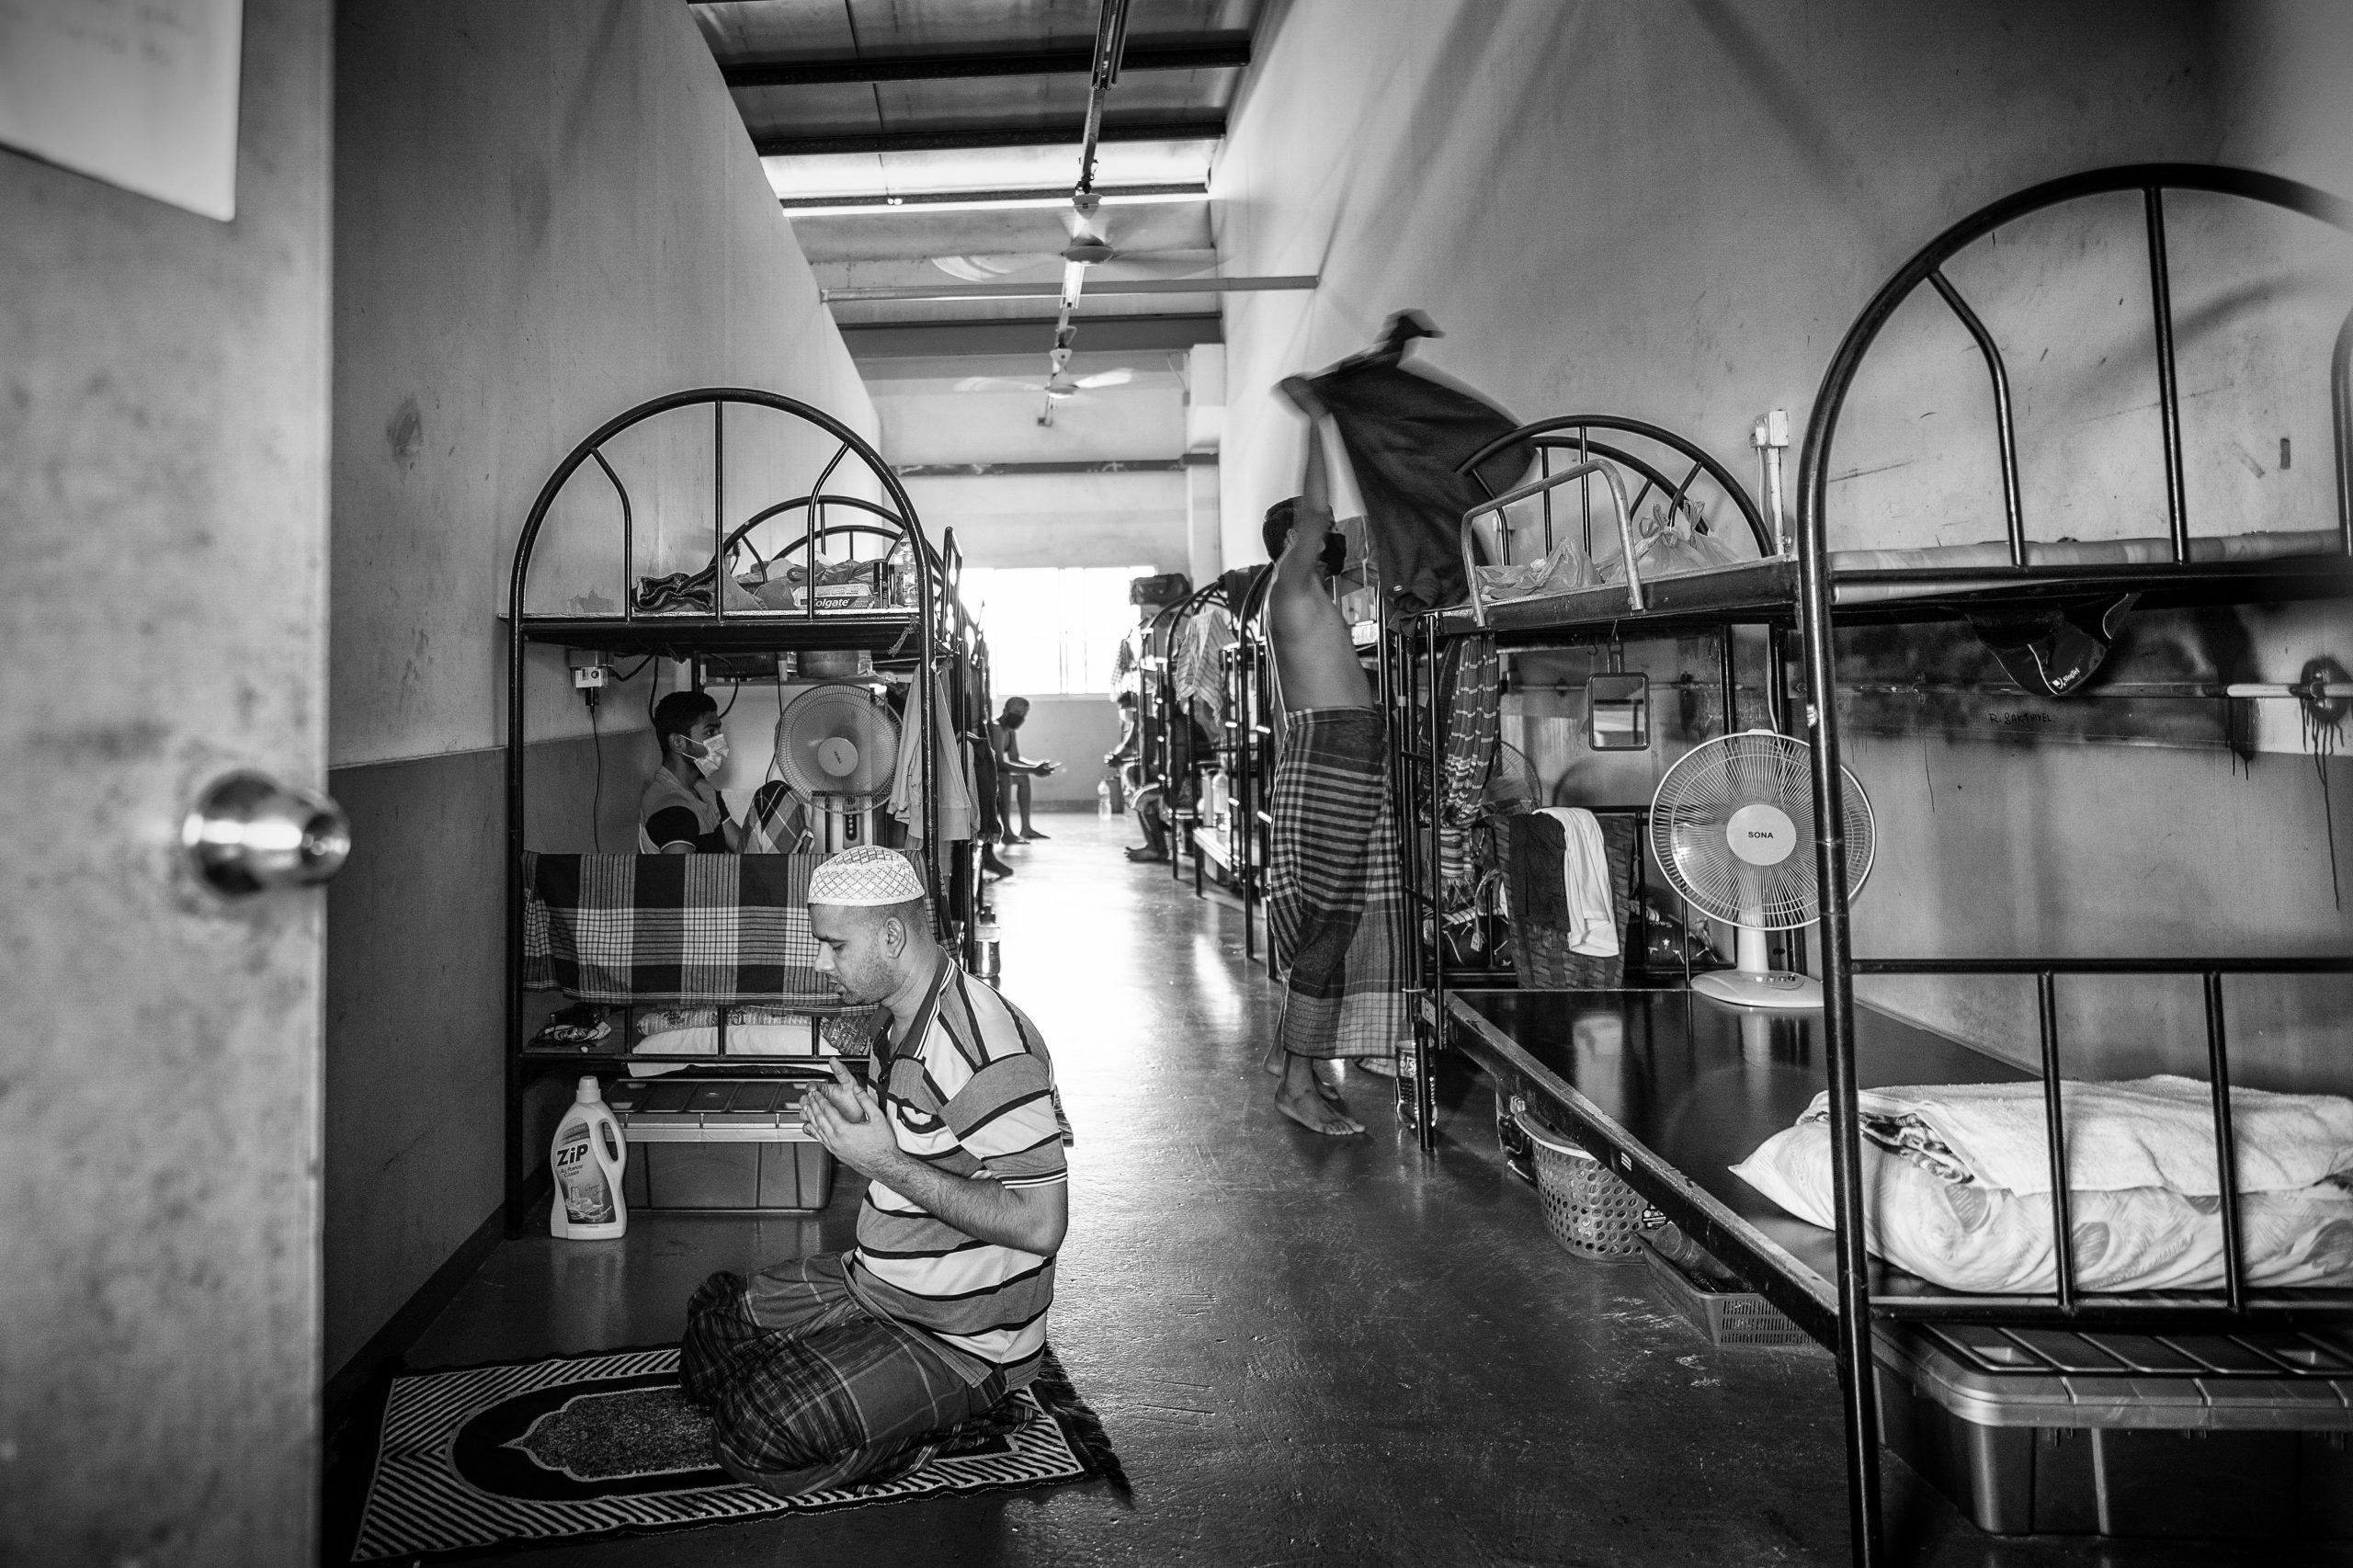 Quarantined in crowded rooms at factory-converted dormitories, migrant workers were most concerned about not having jobs and income, being sent back home, and the lack of interaction outside of their confines